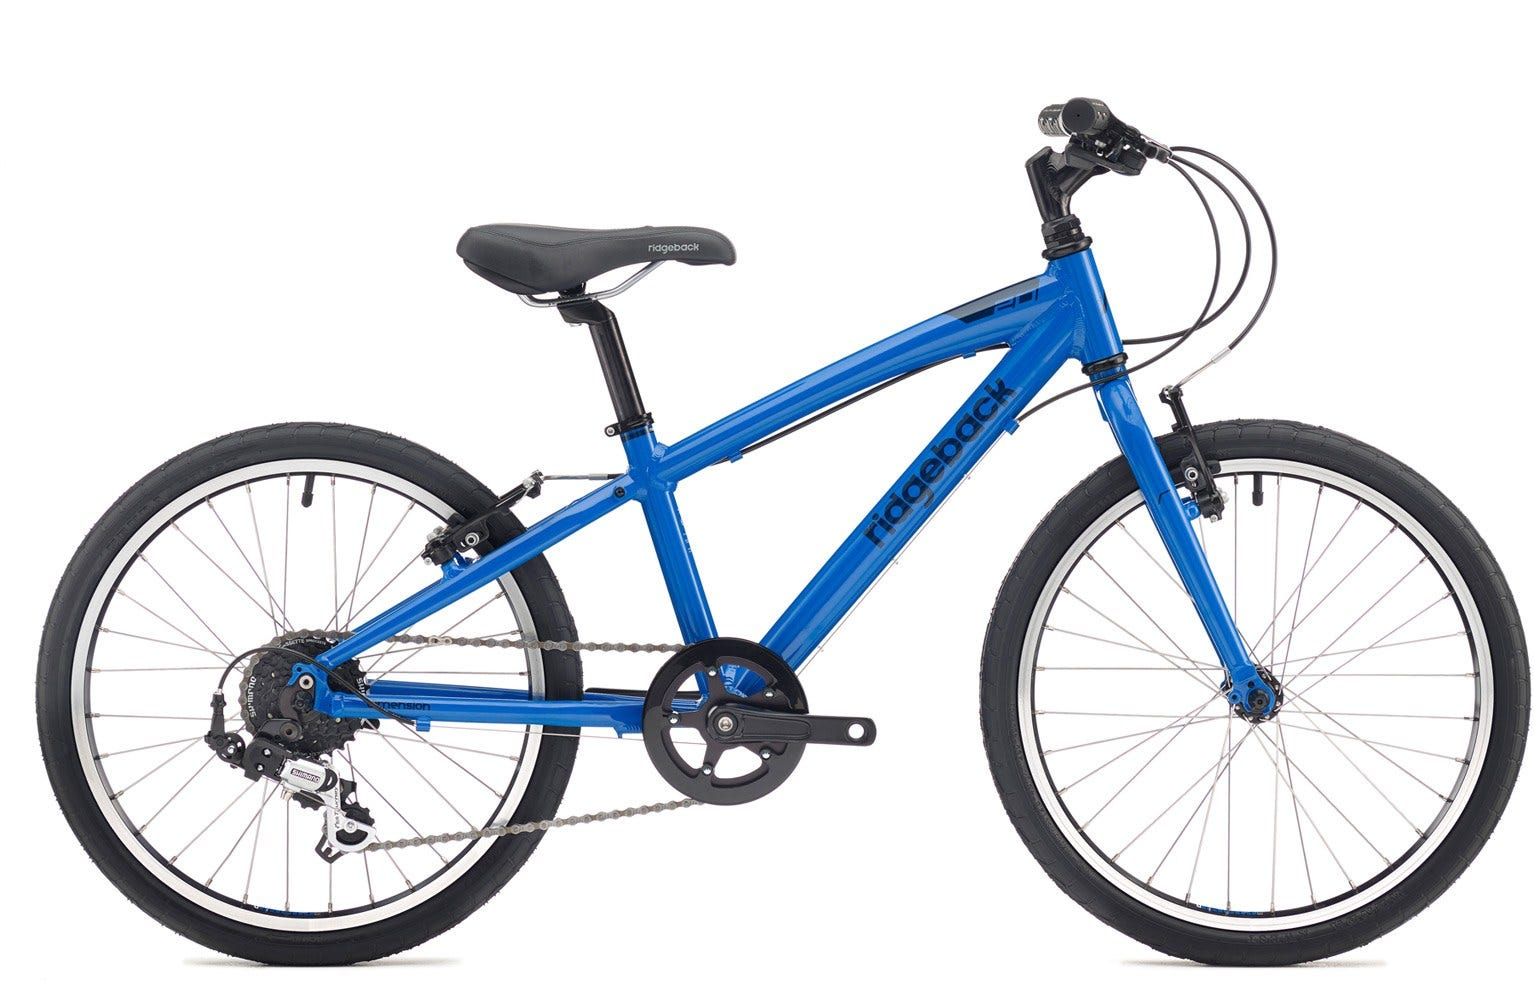 Ridgeback Dimension 20 inch bike blue Ex Display